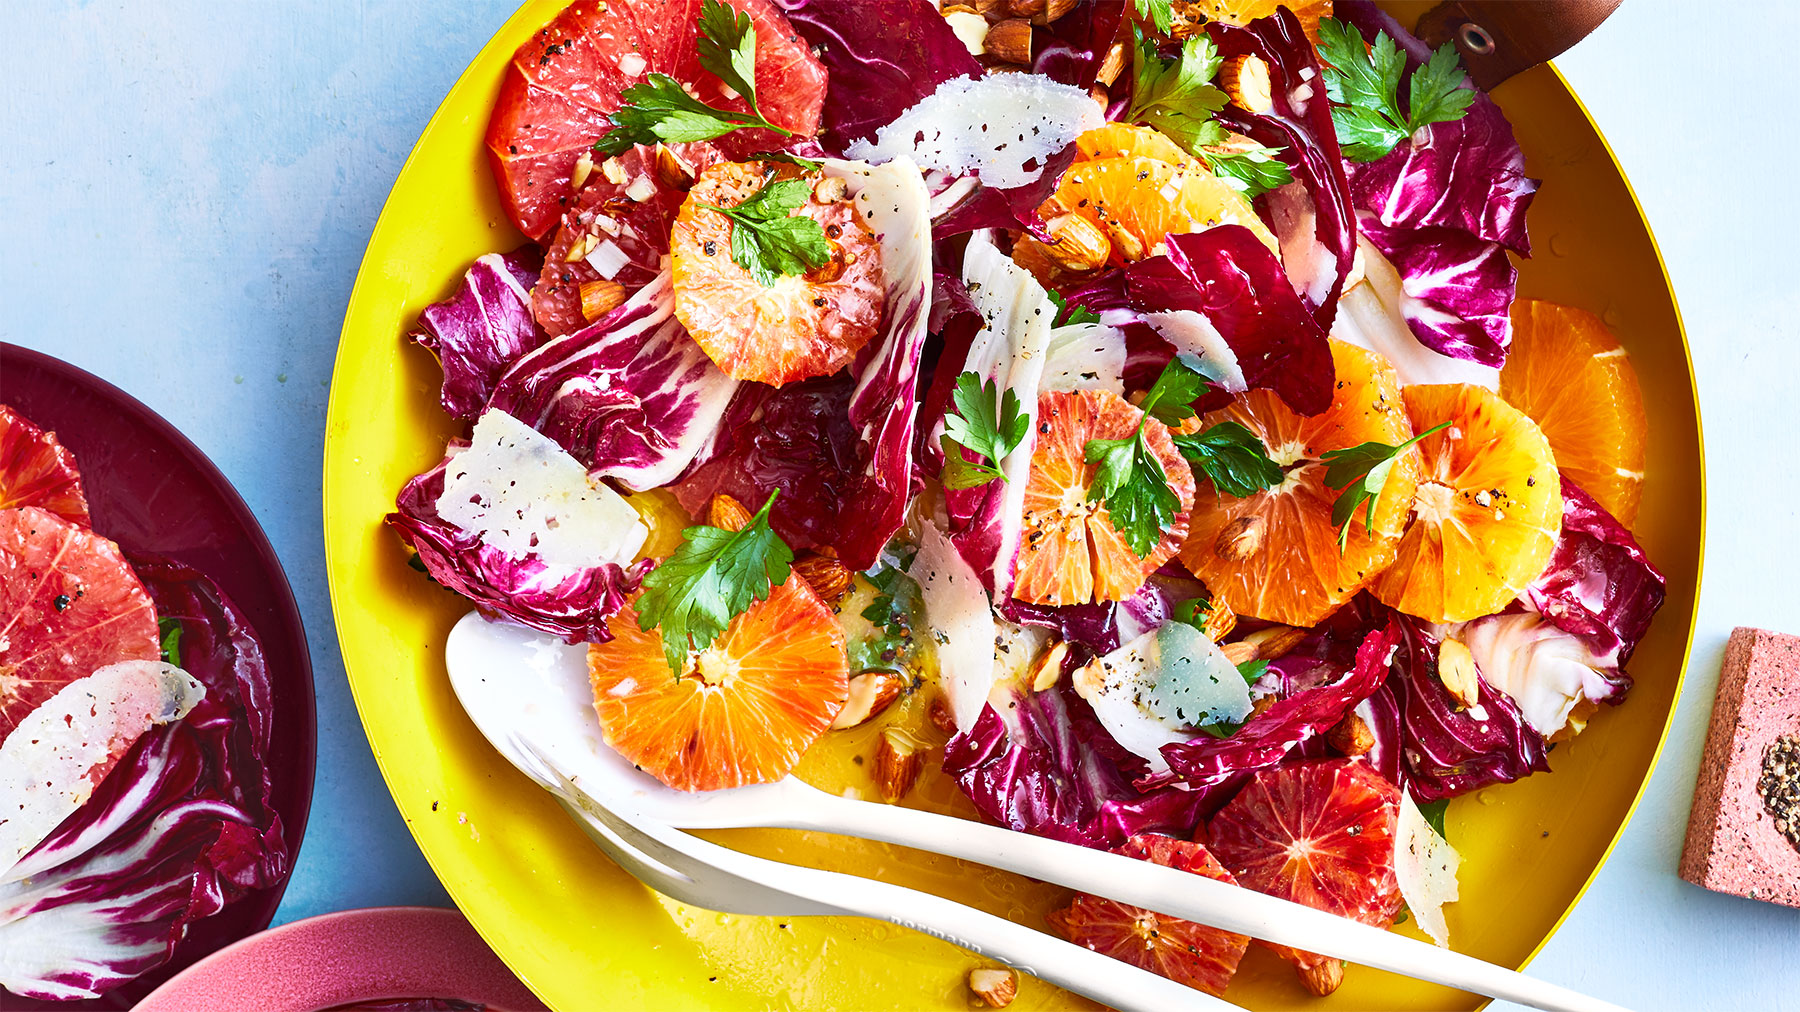 Every-Citrus Salad with Almonds and Manchego Recipe